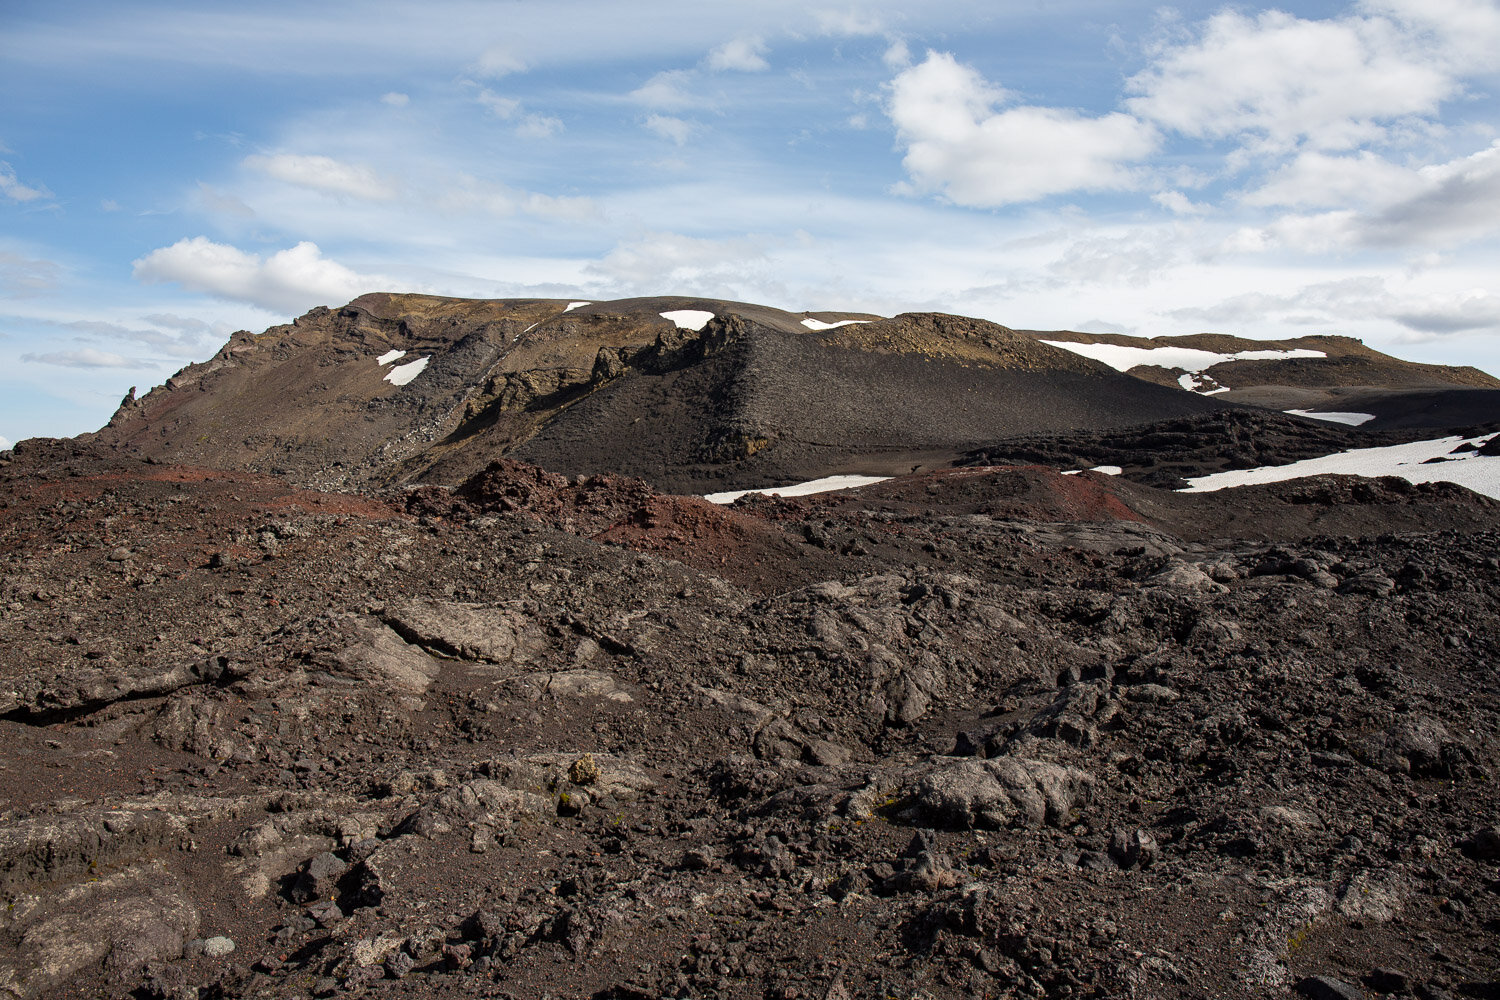 Lava and craters